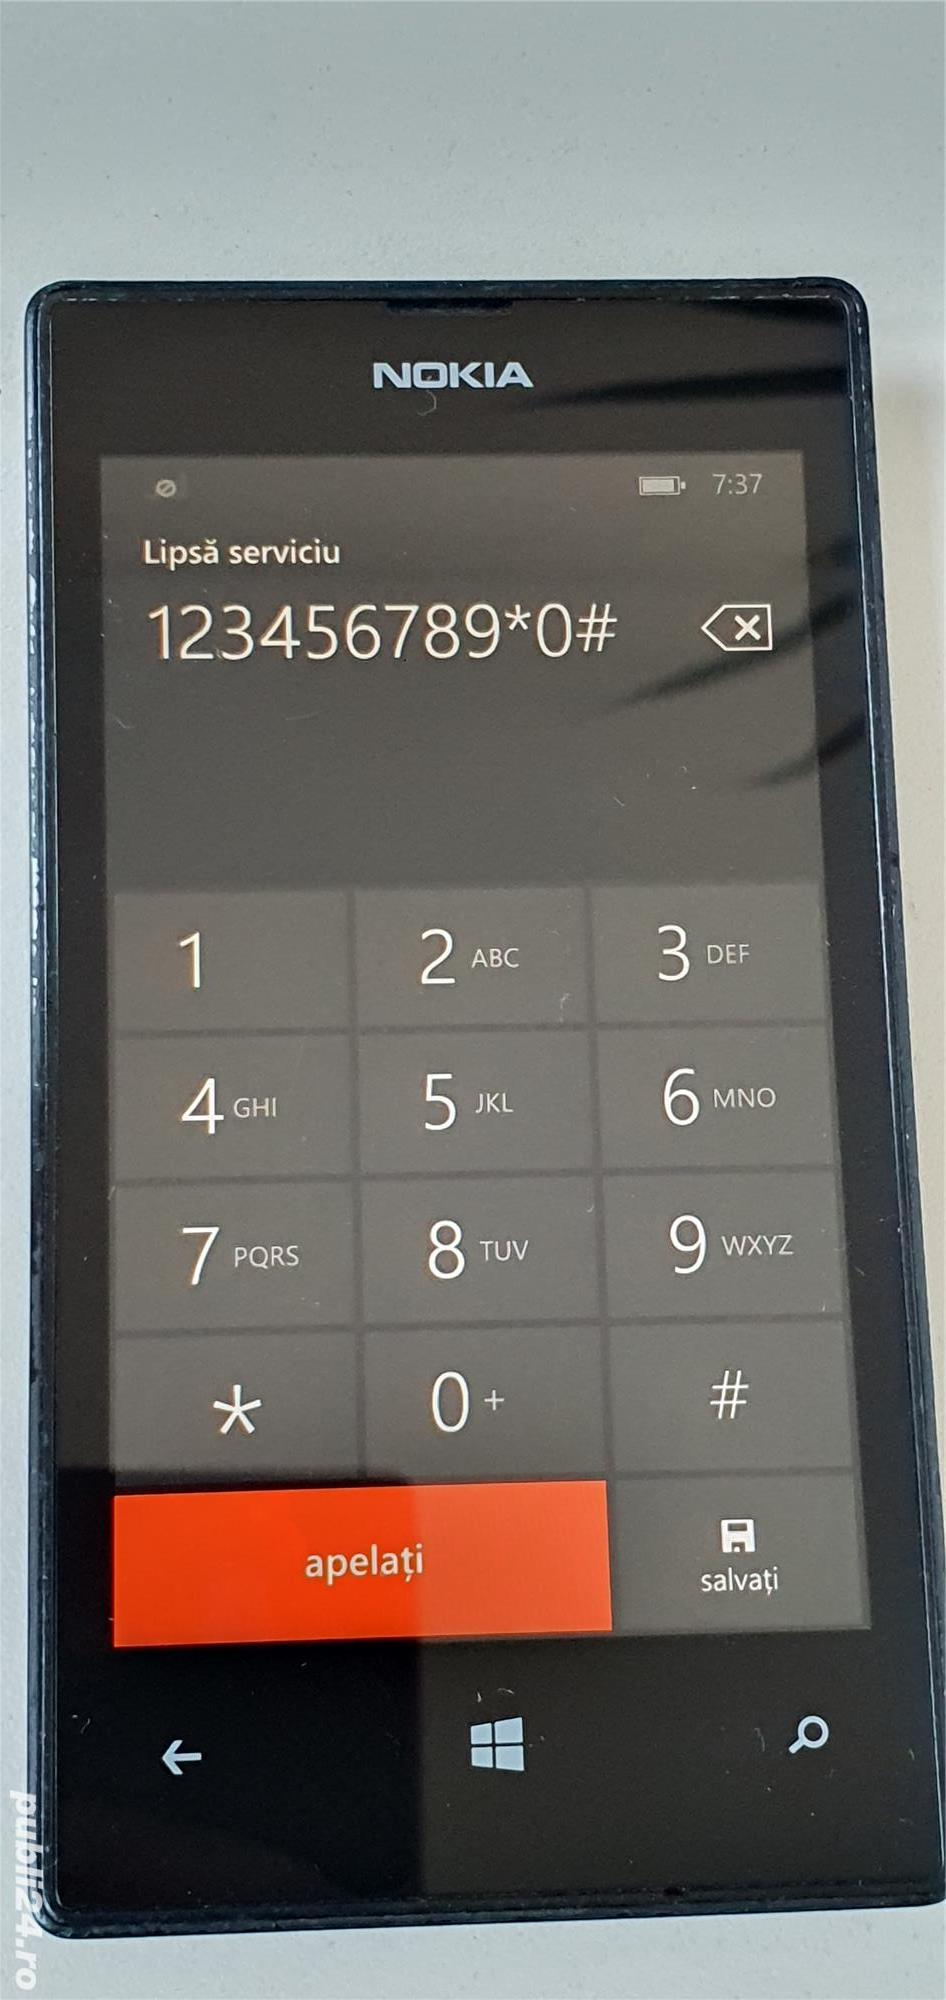 Nokia 520 LUMIA - 2013 - Orange RO